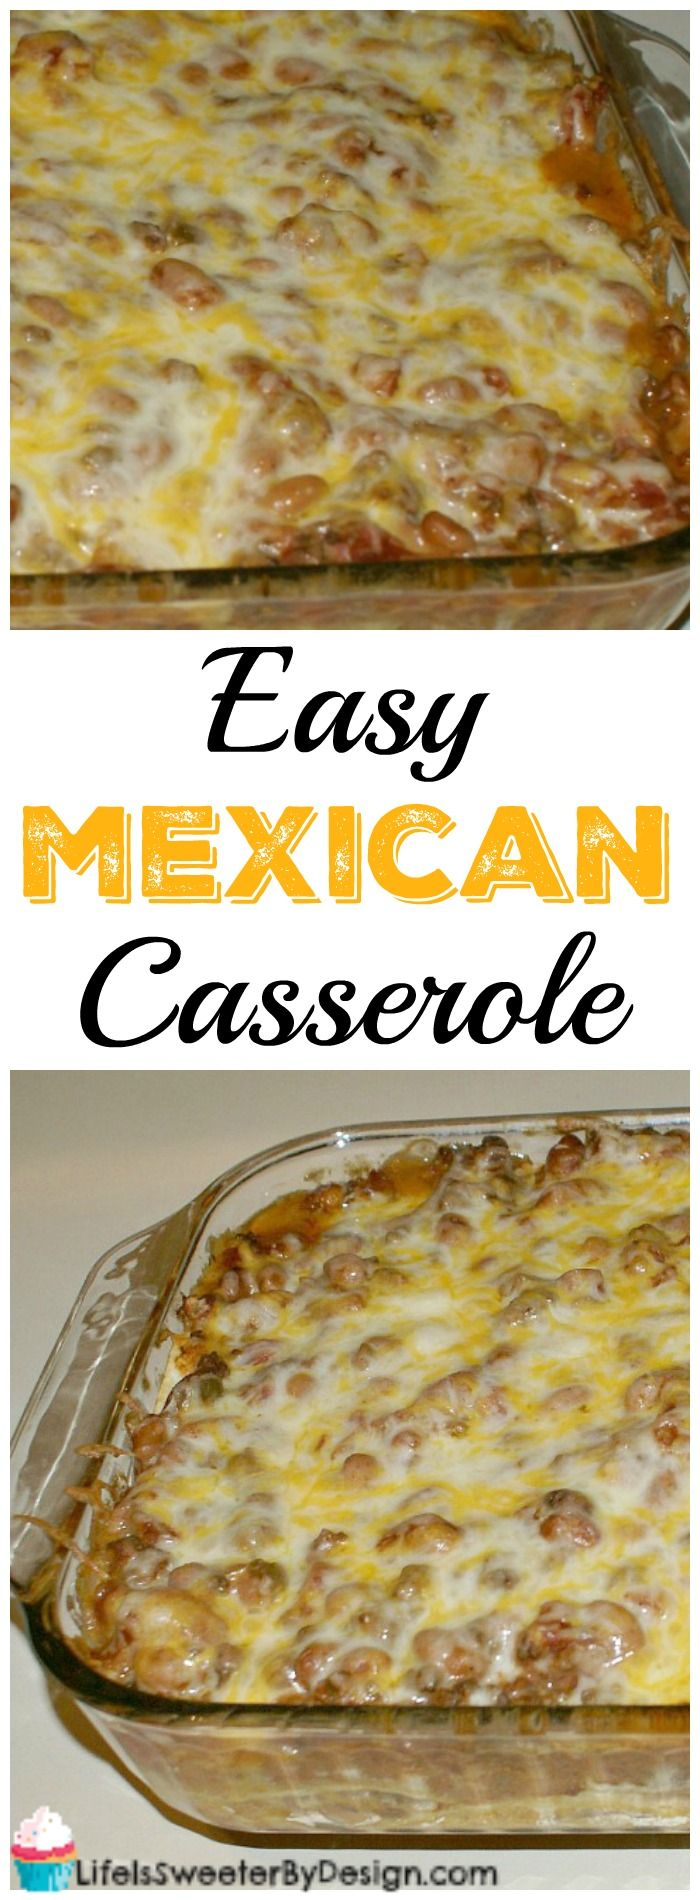 Easy Mexican Casserole is a hearty and filling recipe. This dinner recipe is very easy to adapt for picky eaters too! Filled with corn tortillas, ground beef, shredded cheese and more.